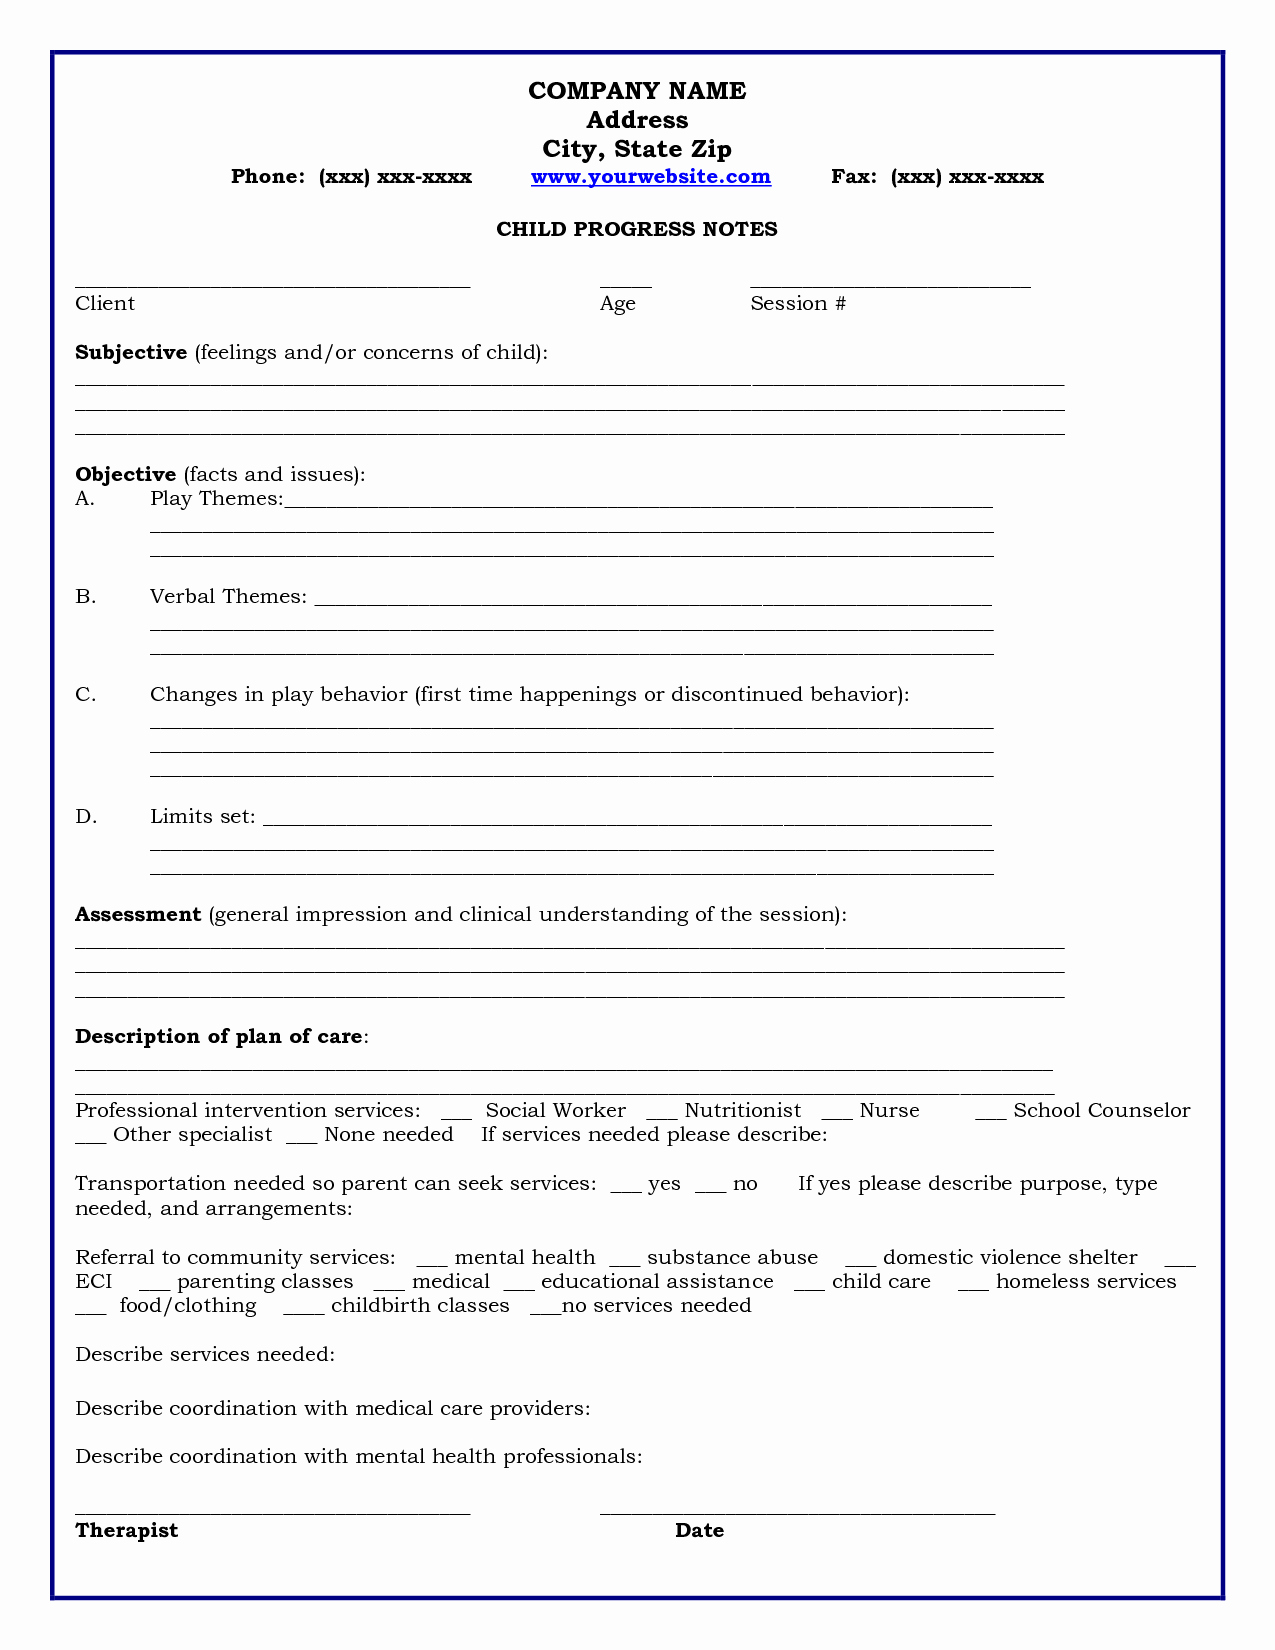 Counseling Progress Notes Template Best Of Home Child Progress Notes Medicaid Child Progress